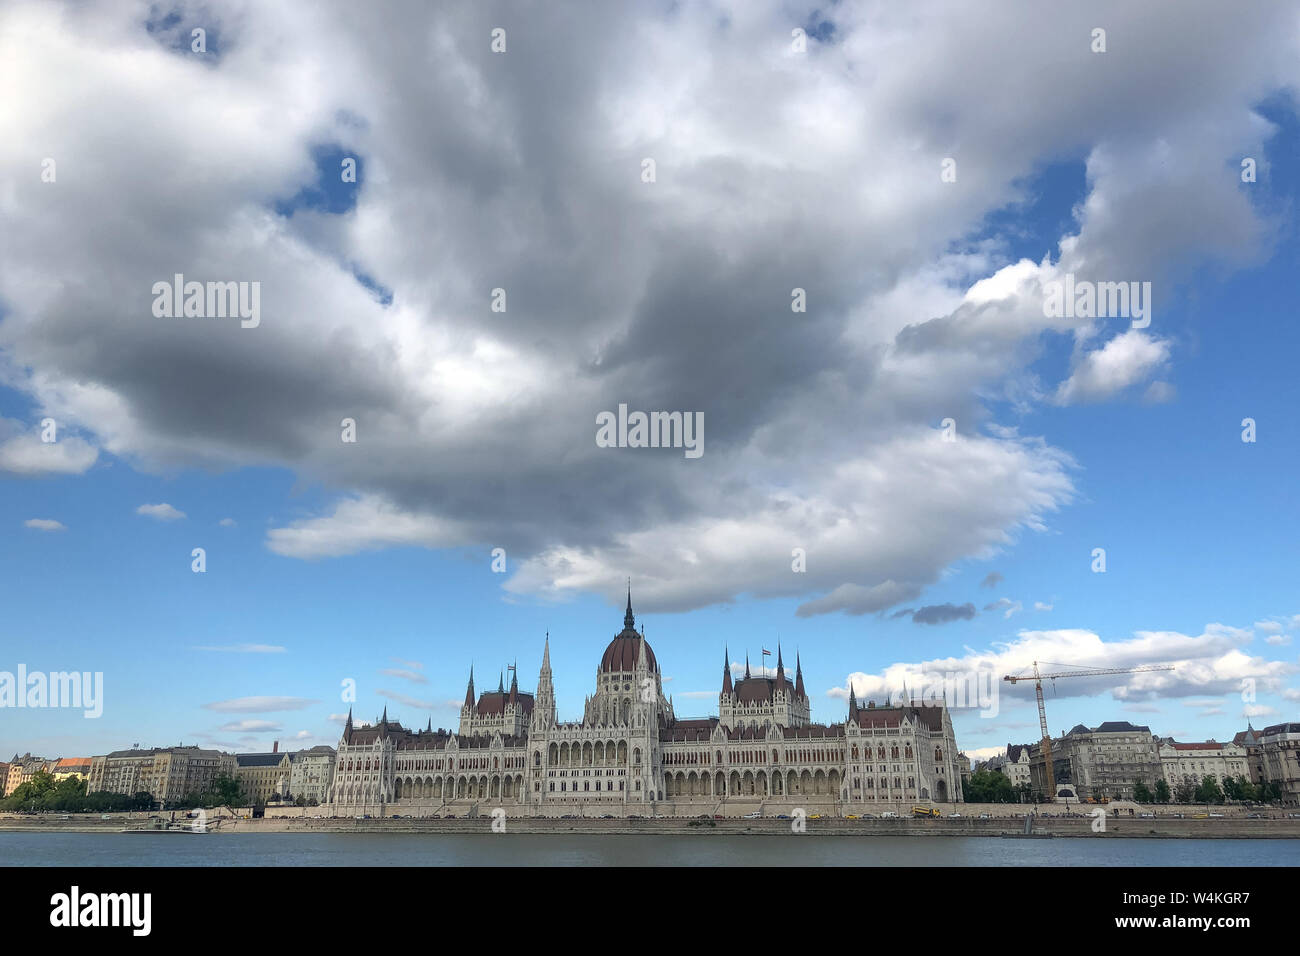 Budapest, Hungary. 23rd July, 2019. Clouds float over the parliament building in downtown Budapest, Hungary, on July 23, 2019. Credit: Attila Volgyi/Xinhua/Alamy Live News Stock Photo